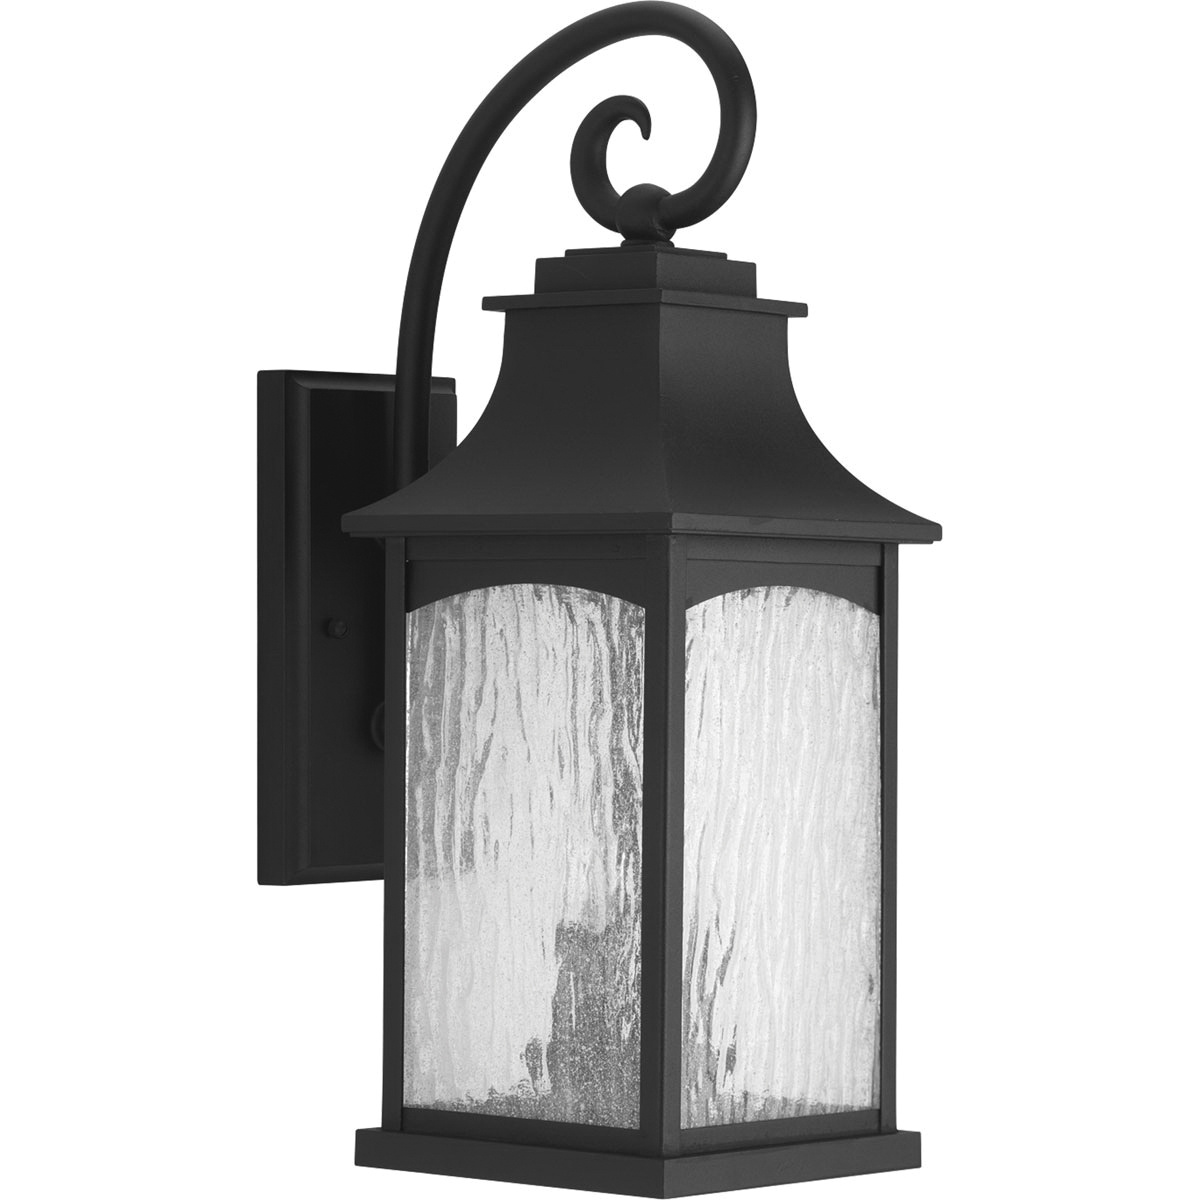 Progress Lighting P5754 31 2 Light Wall Lantern 60 Watt 120 Volt